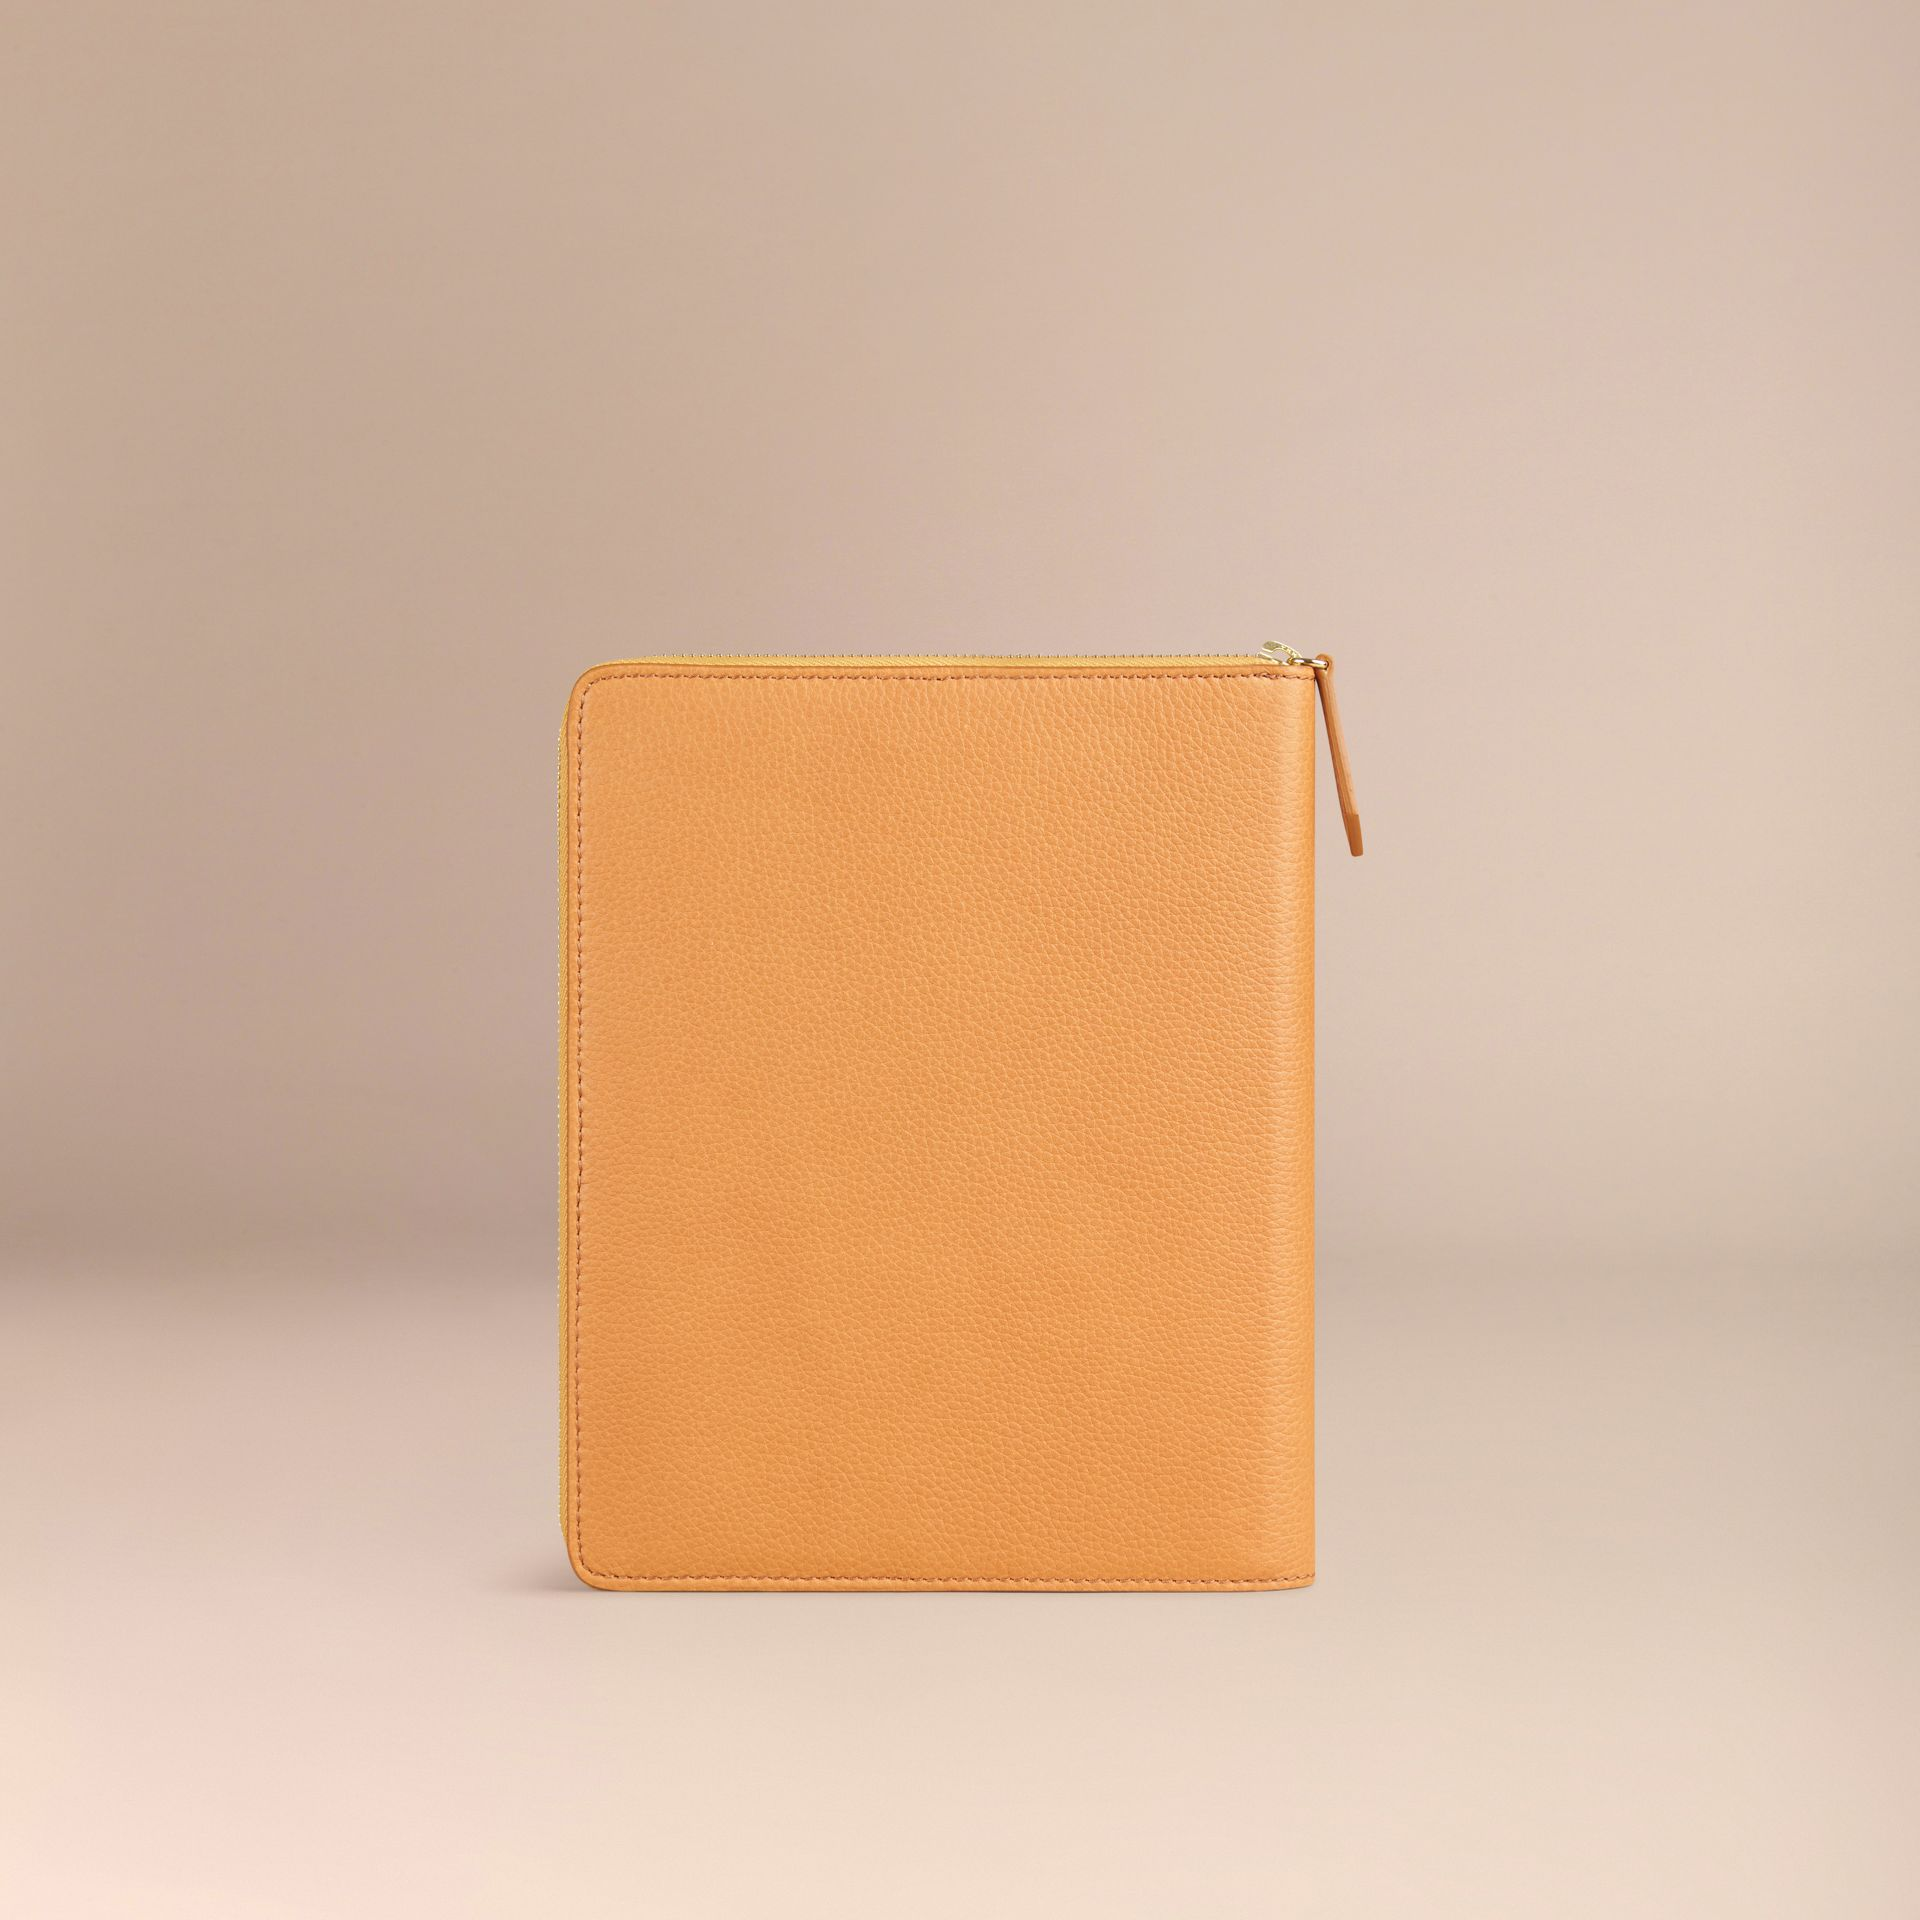 Ziparound Grainy Leather 18 Month 2016/17 A5 Diary Ochre Yellow - gallery image 3